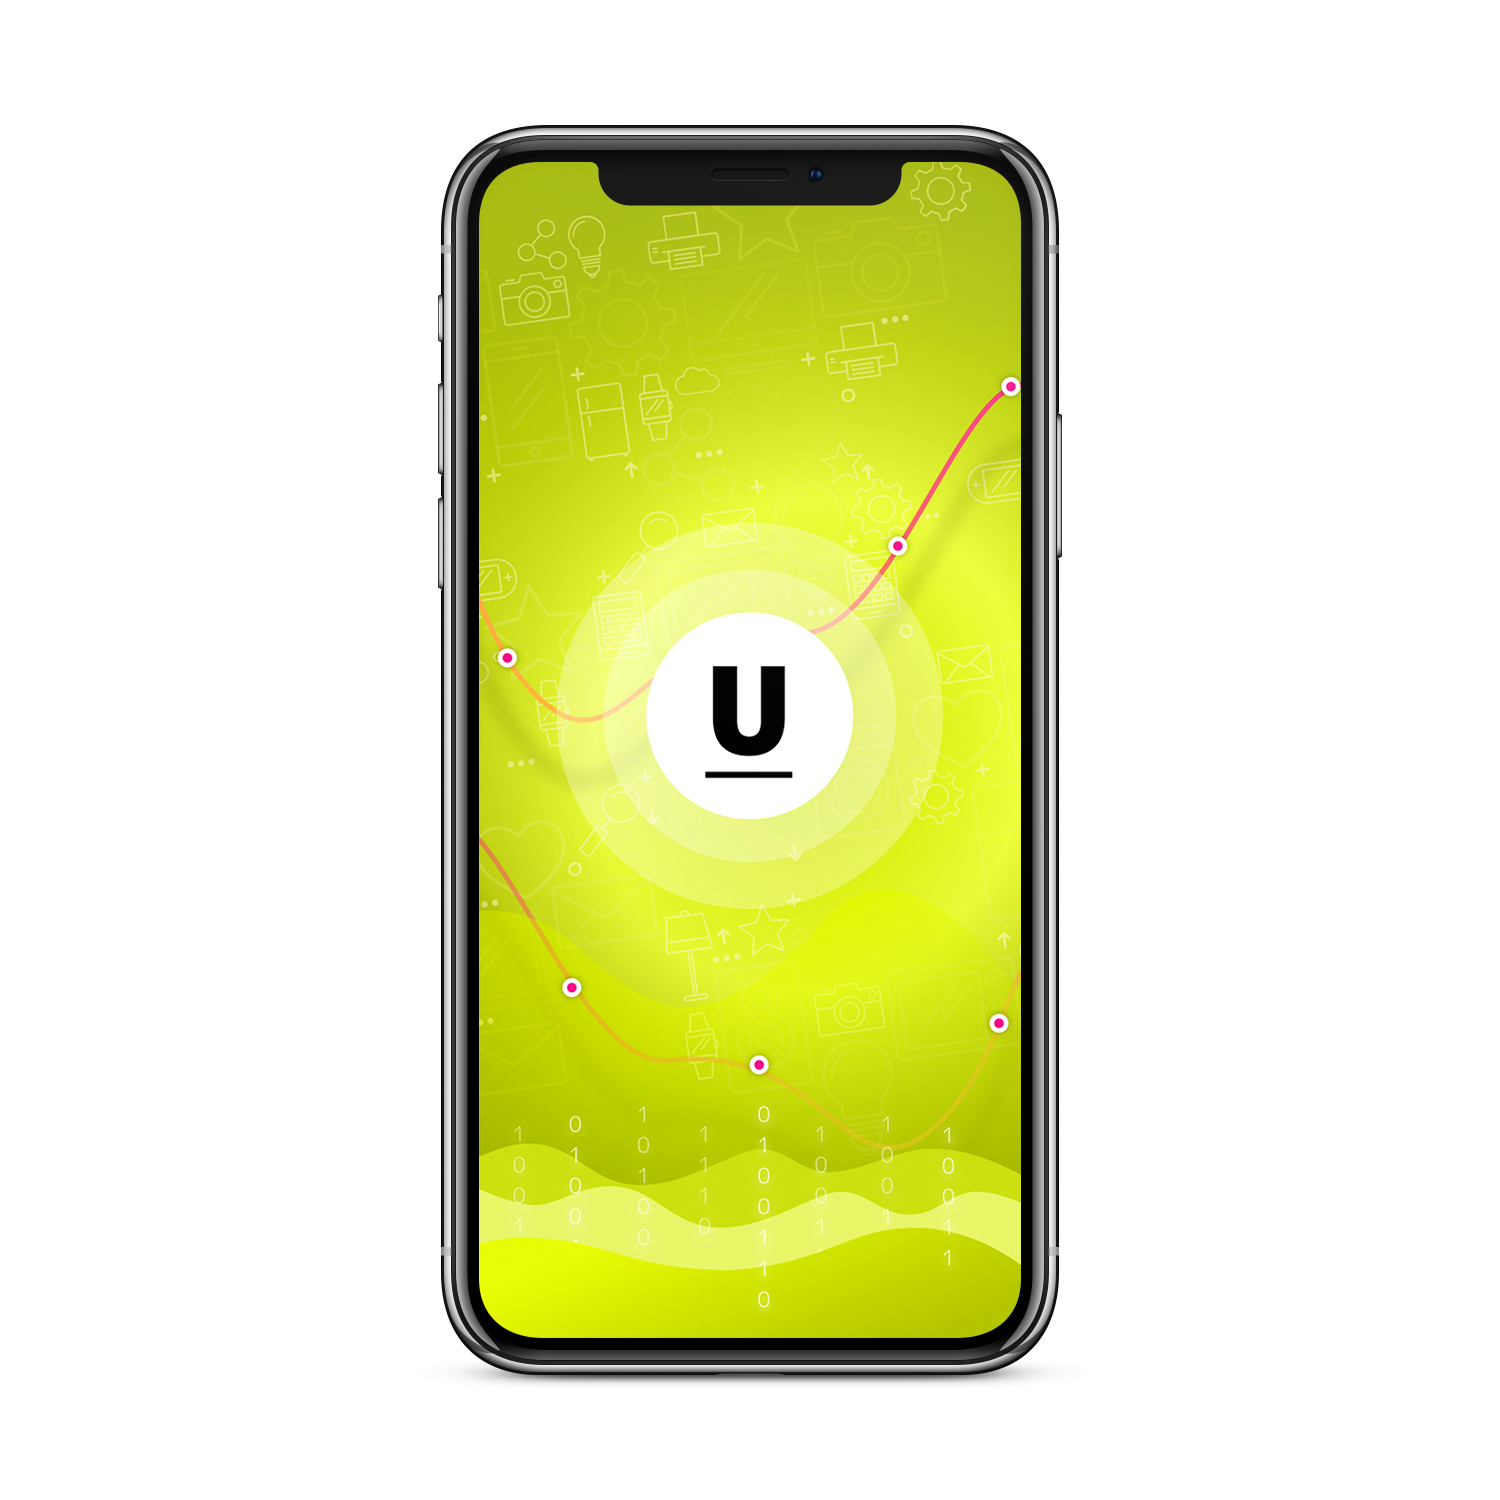 iPhone-X-Space-Gray-Frontal-Free-Mockup копия1